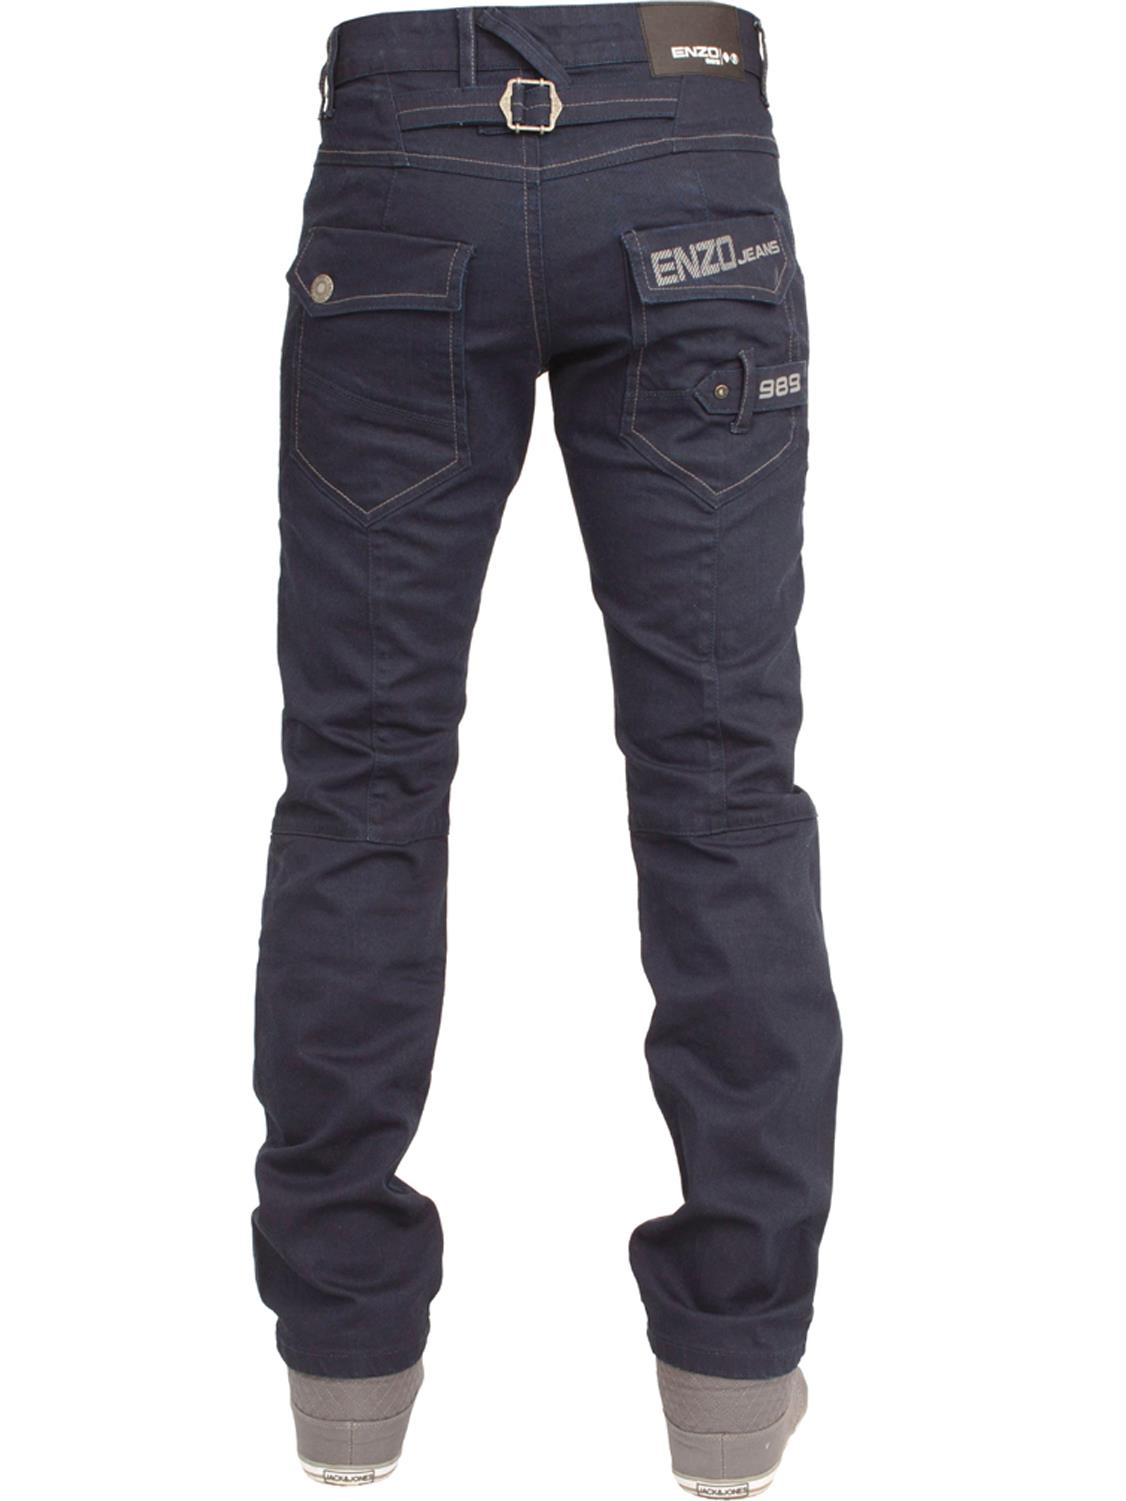 Enzo-Mens-Jeans-Big-Tall-Leg-King-Size-Denim-Pants-Chino-Trousers-Waist-44-034-60-034 miniature 22